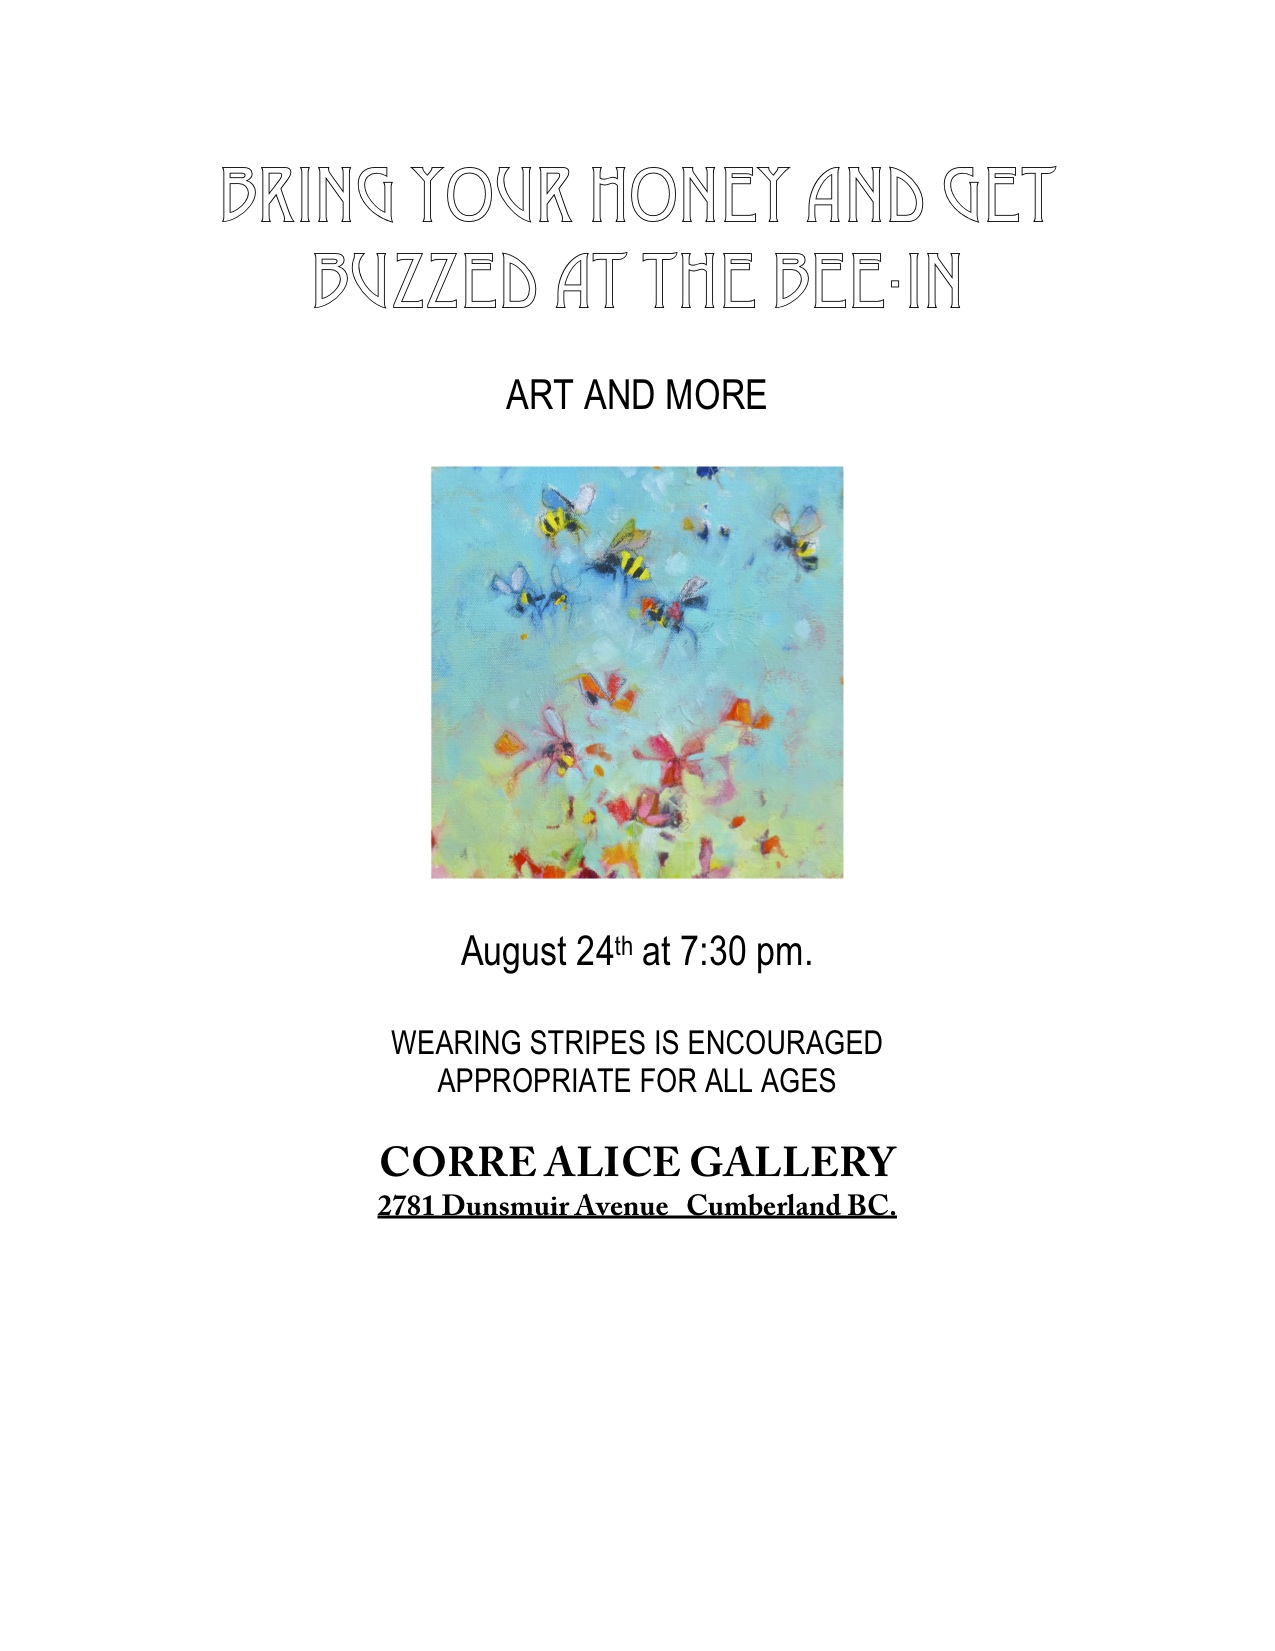 August Exhibit at the Corre alice Gallery